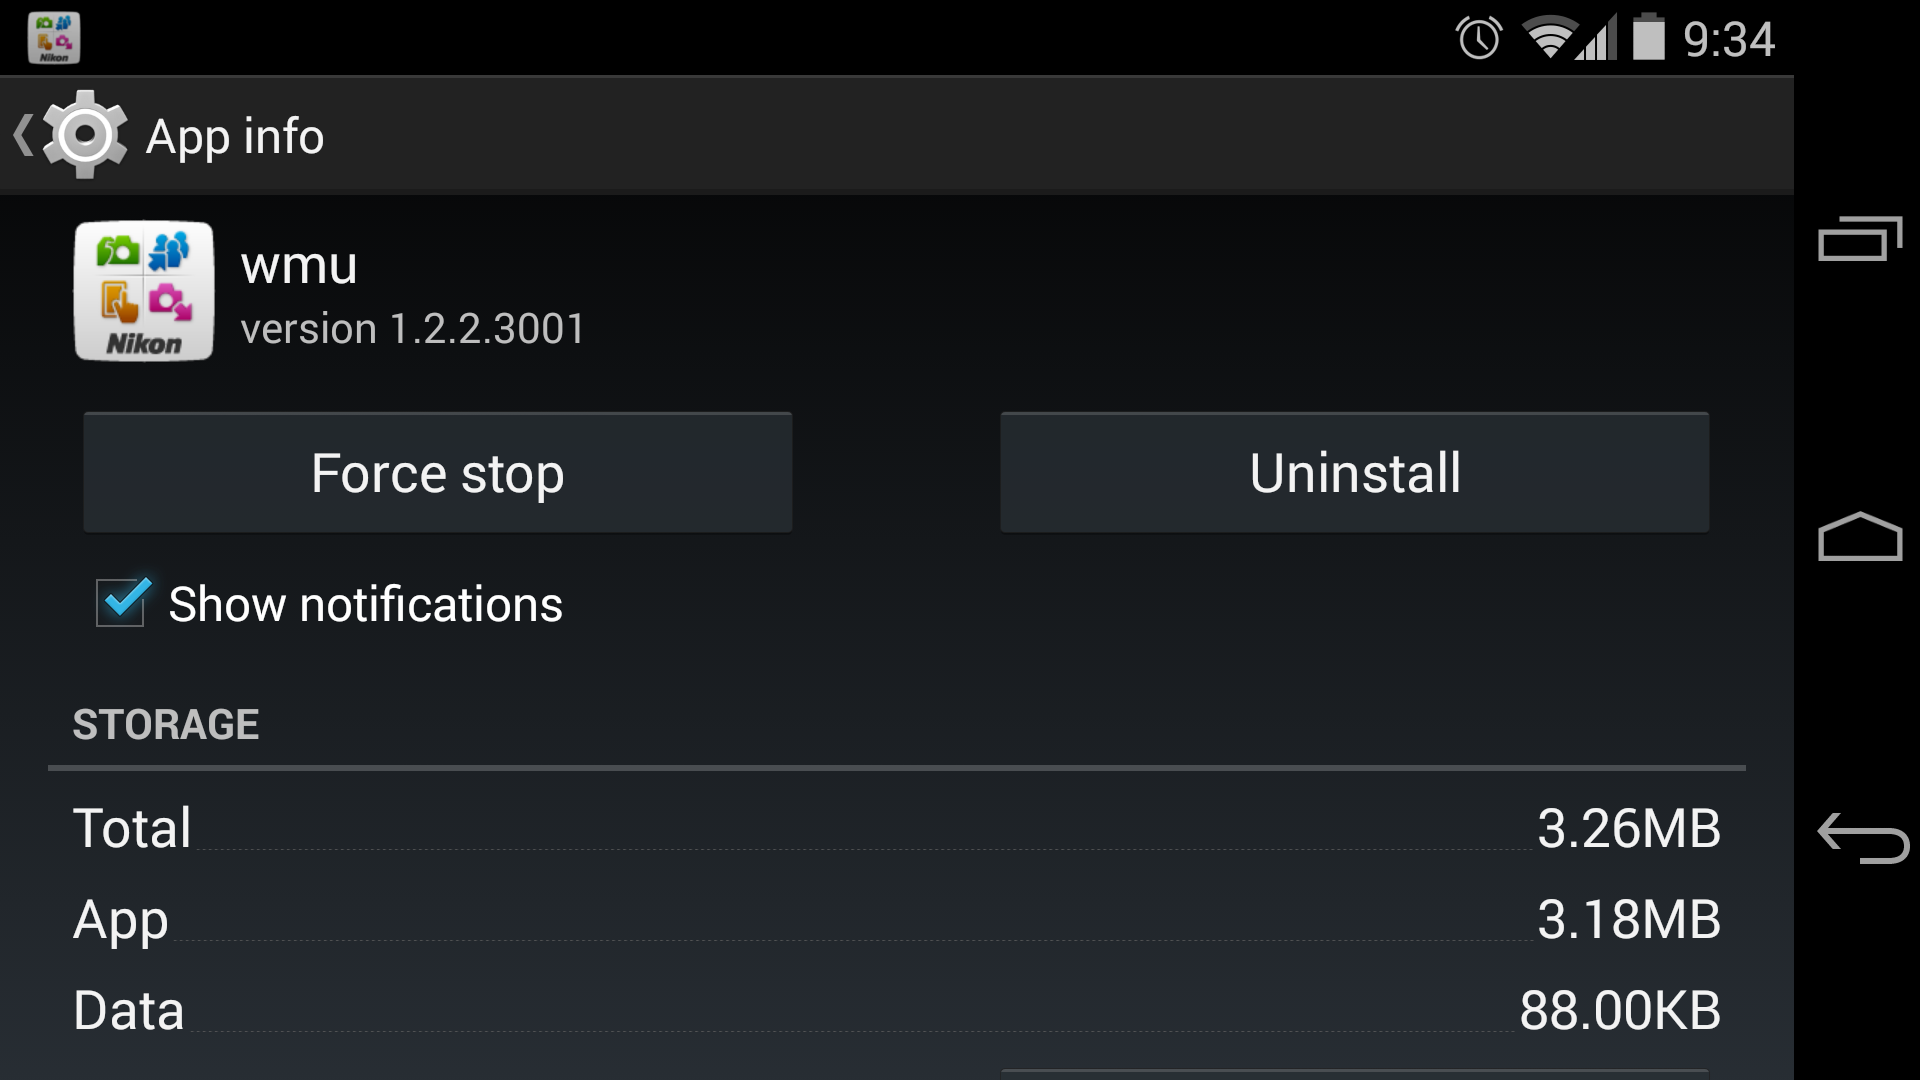 A screenshot of the Nikon's WMU app screen in the Android system menu.